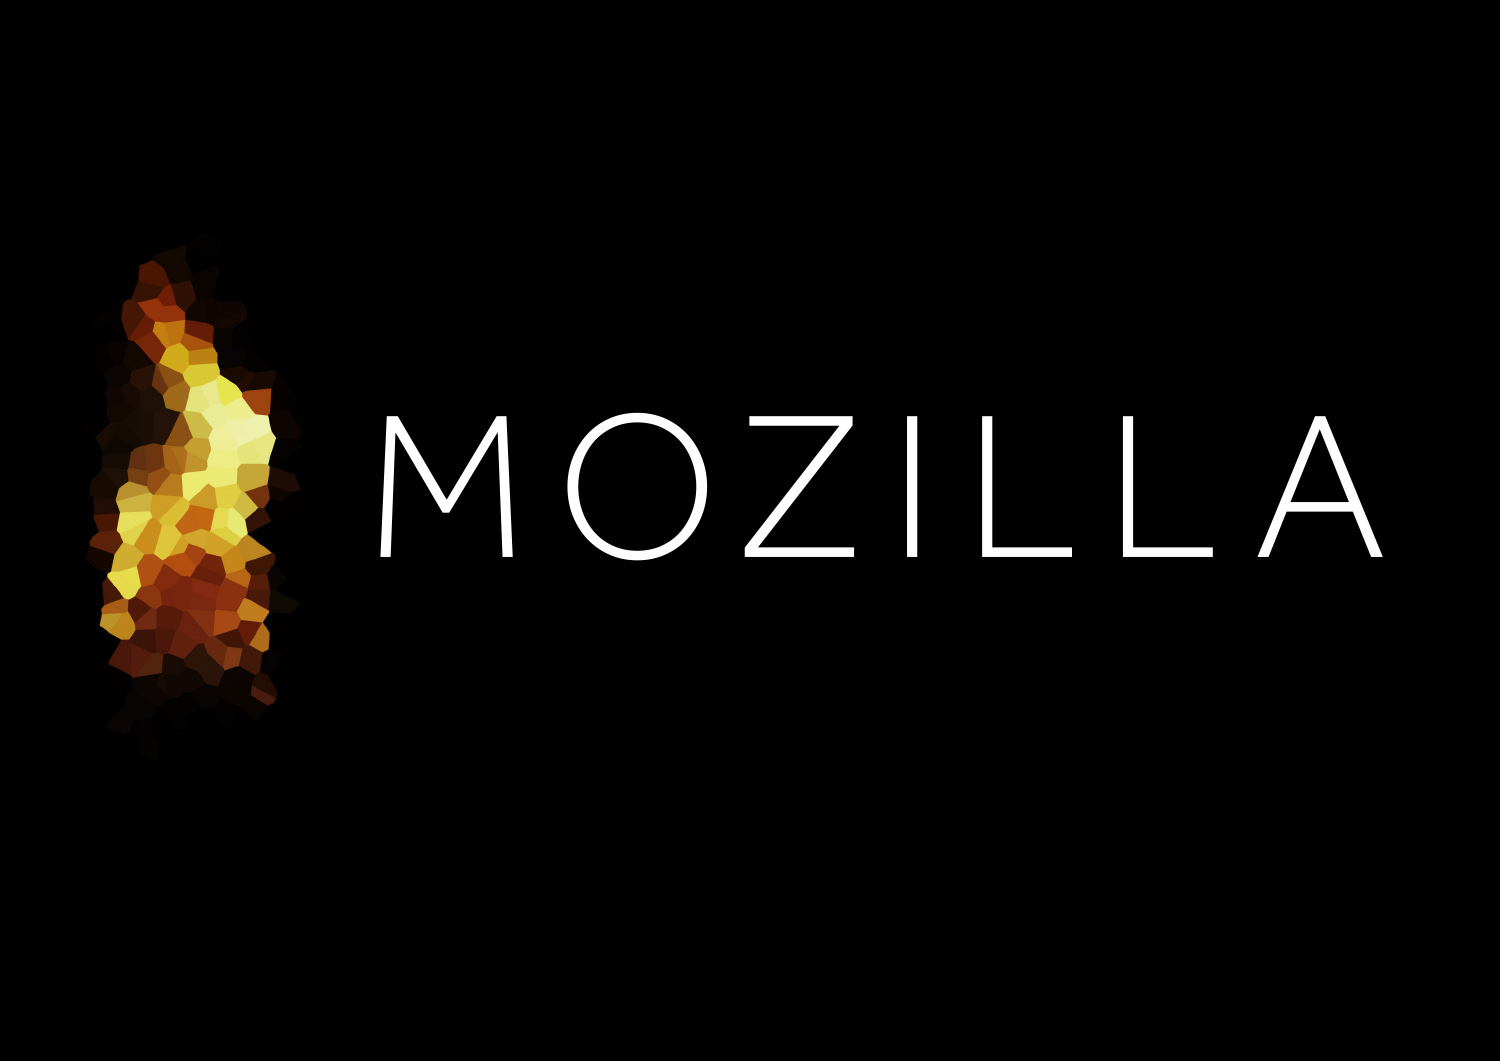 mozilla-flame_3oct-blog_2